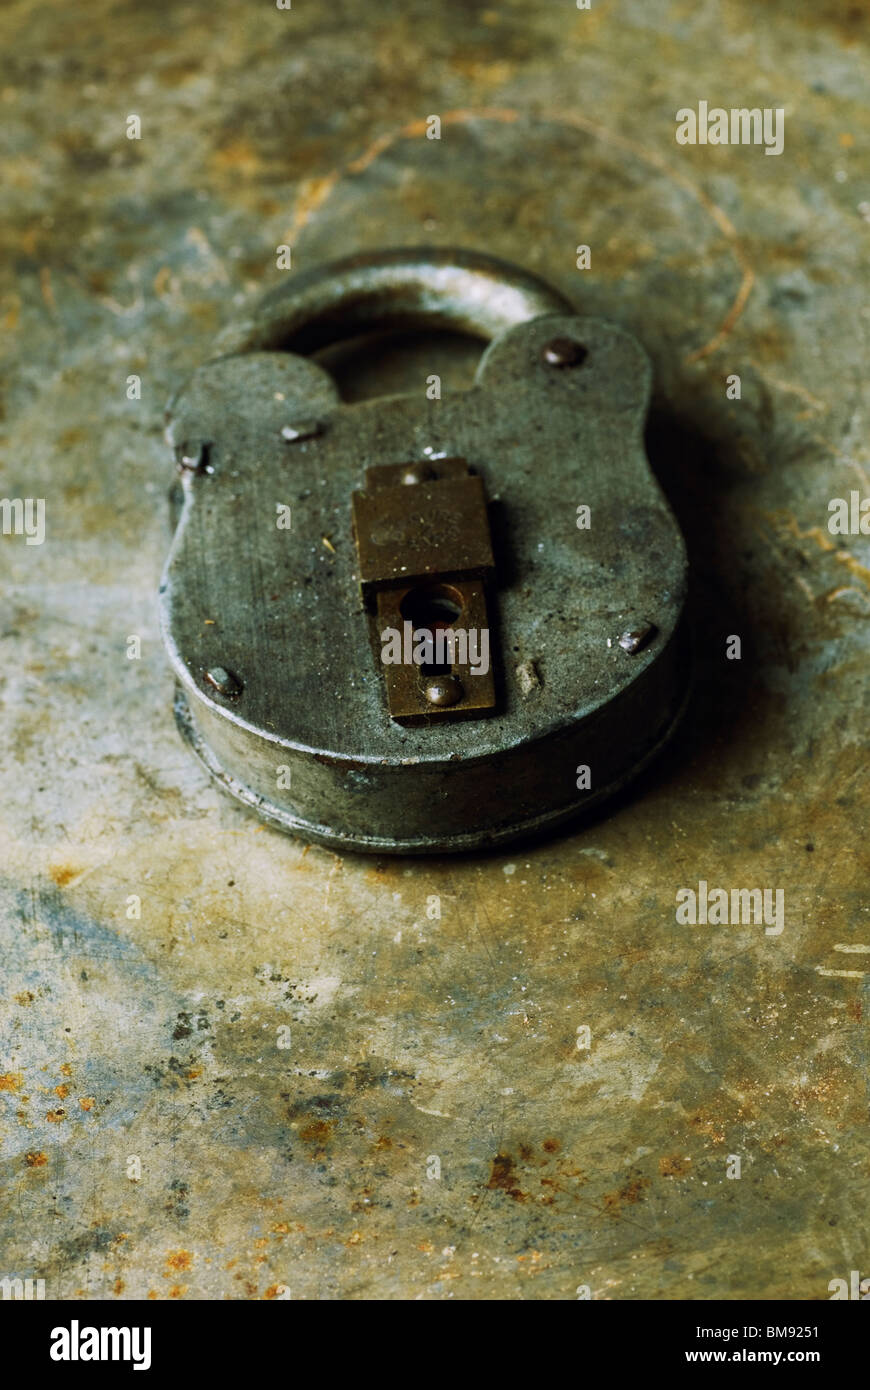 Old fashioned rusty padlock over a grungy background - Stock Image